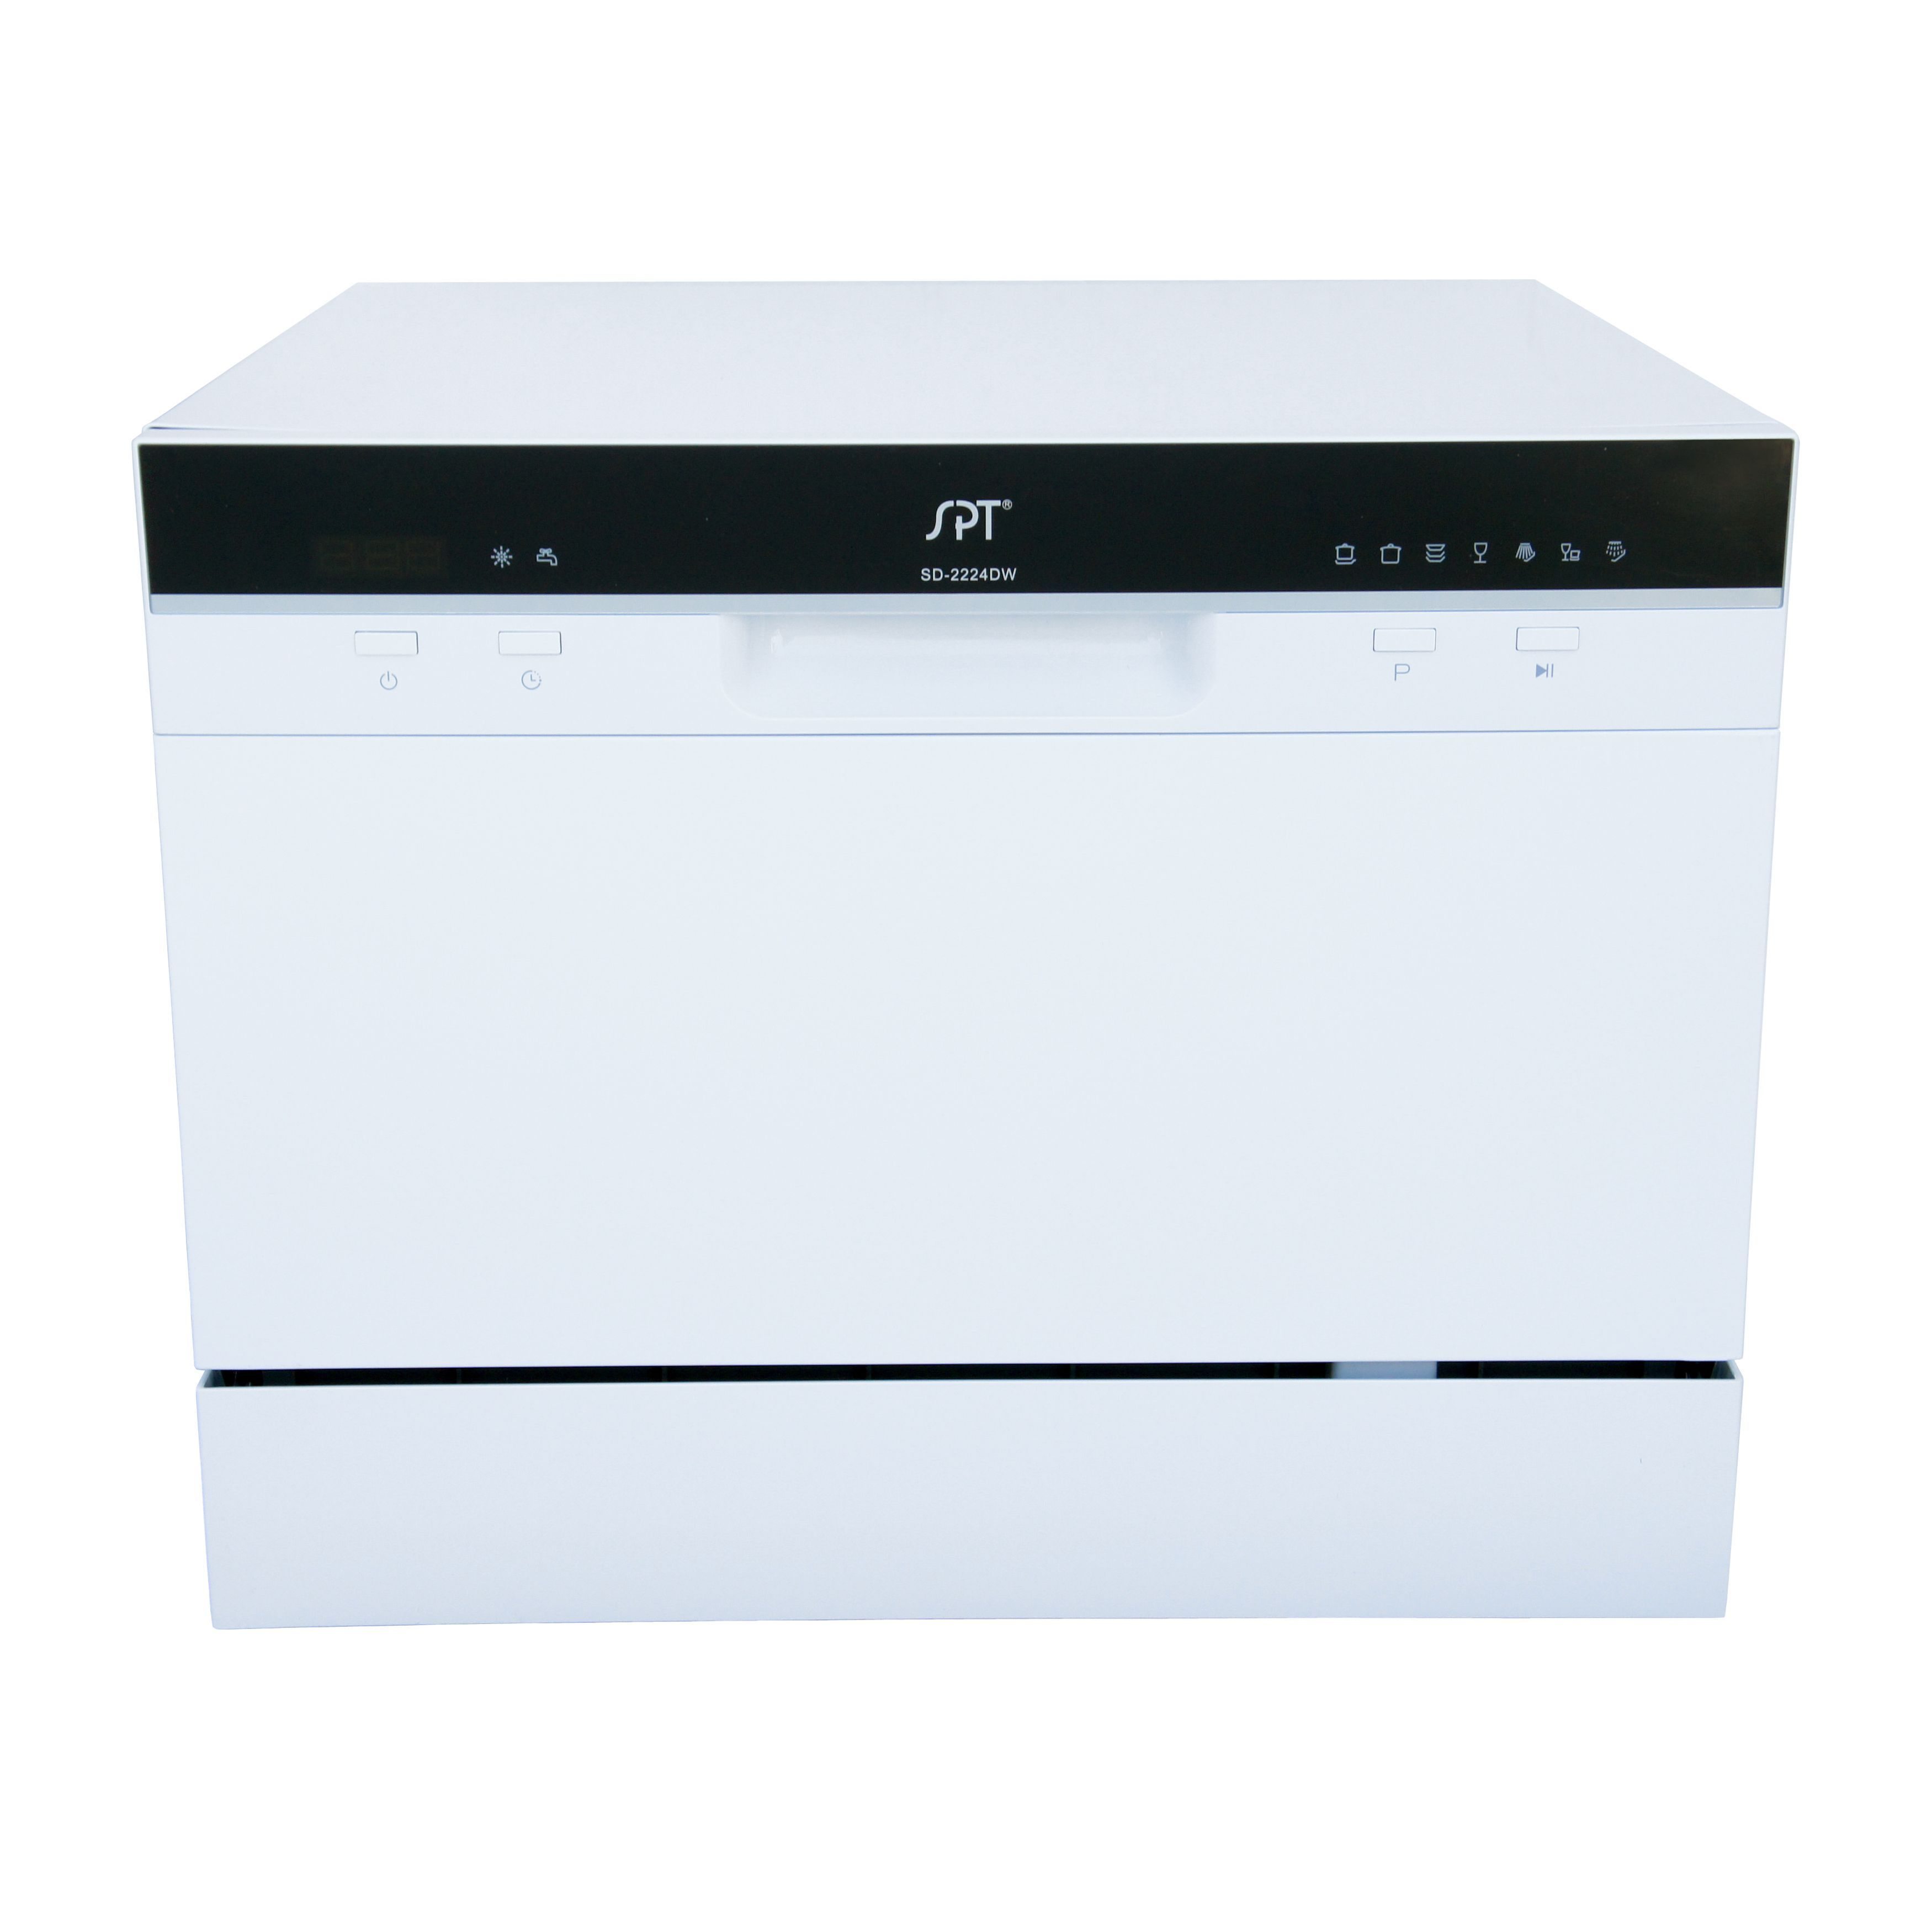 Spt 6 Place Setting White Countertop Dishwasher With Delay Start Countertop Dishwasher White Countertops Countertops